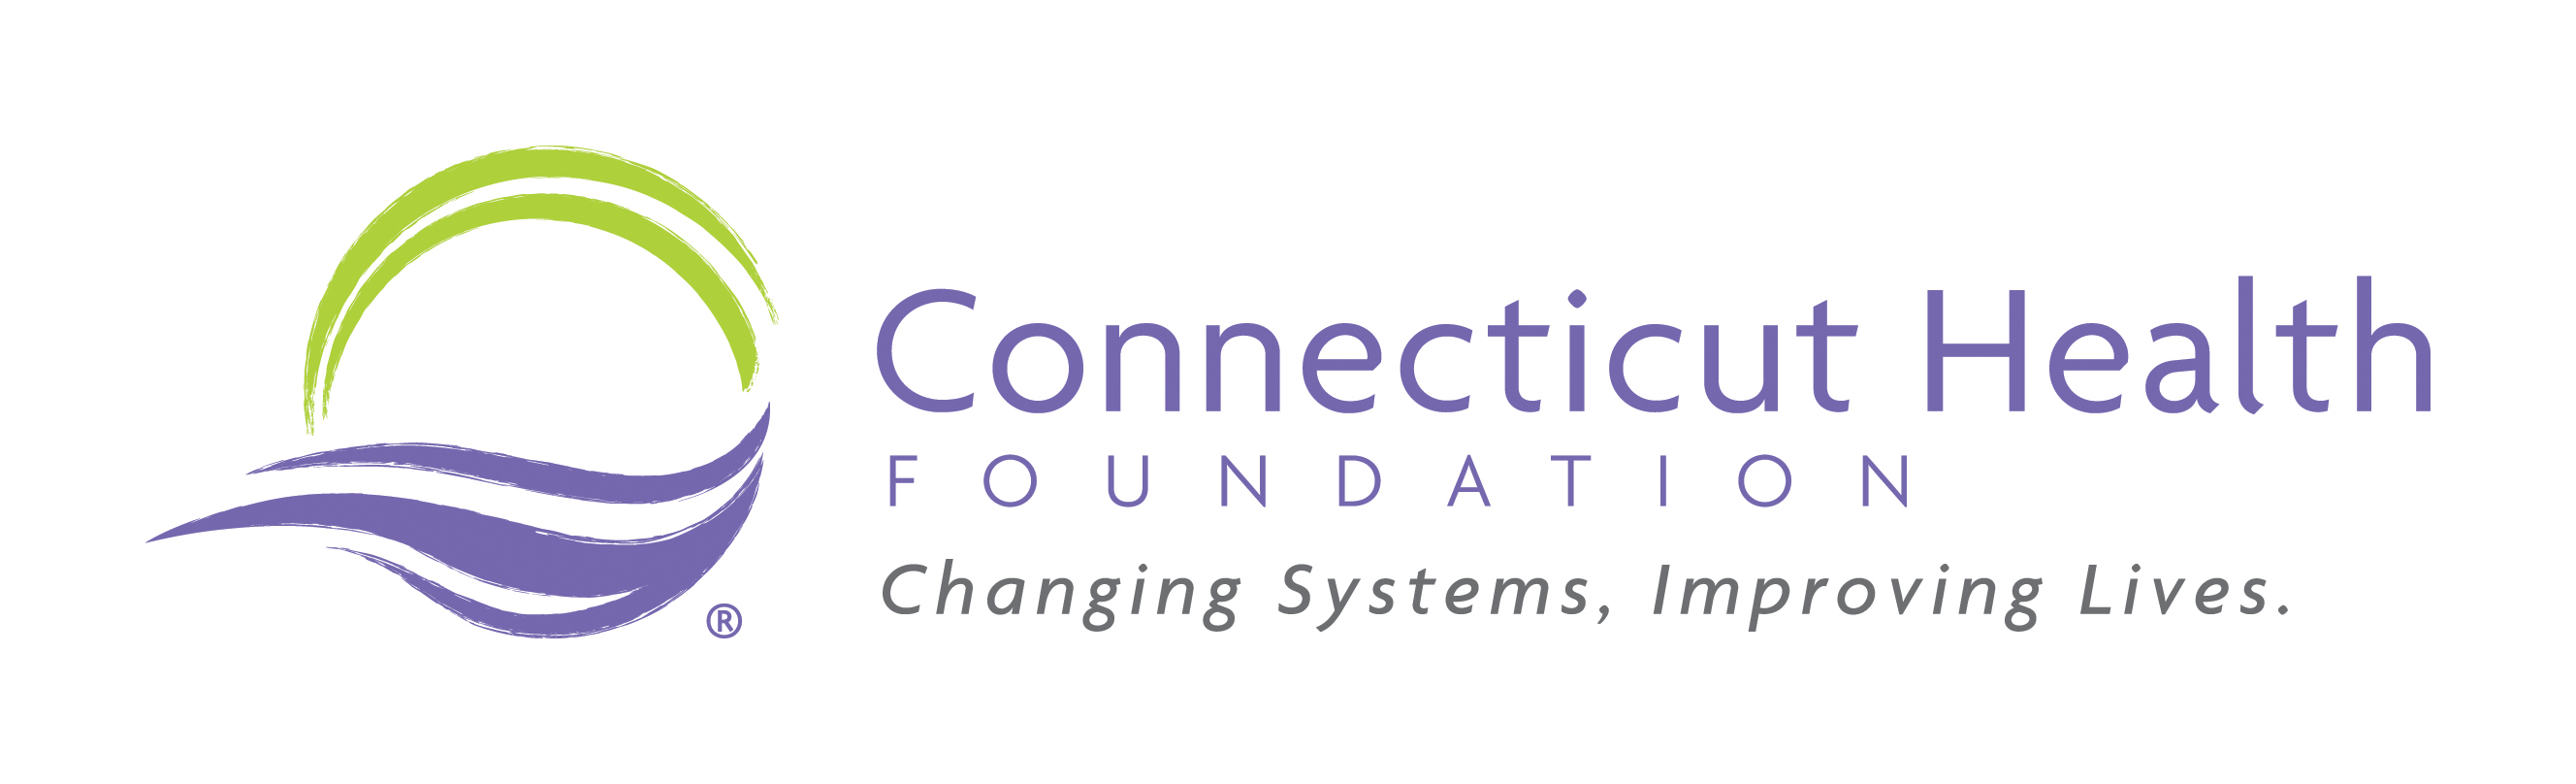 CTHealthFoundationLogo_ChangingLives.jpg